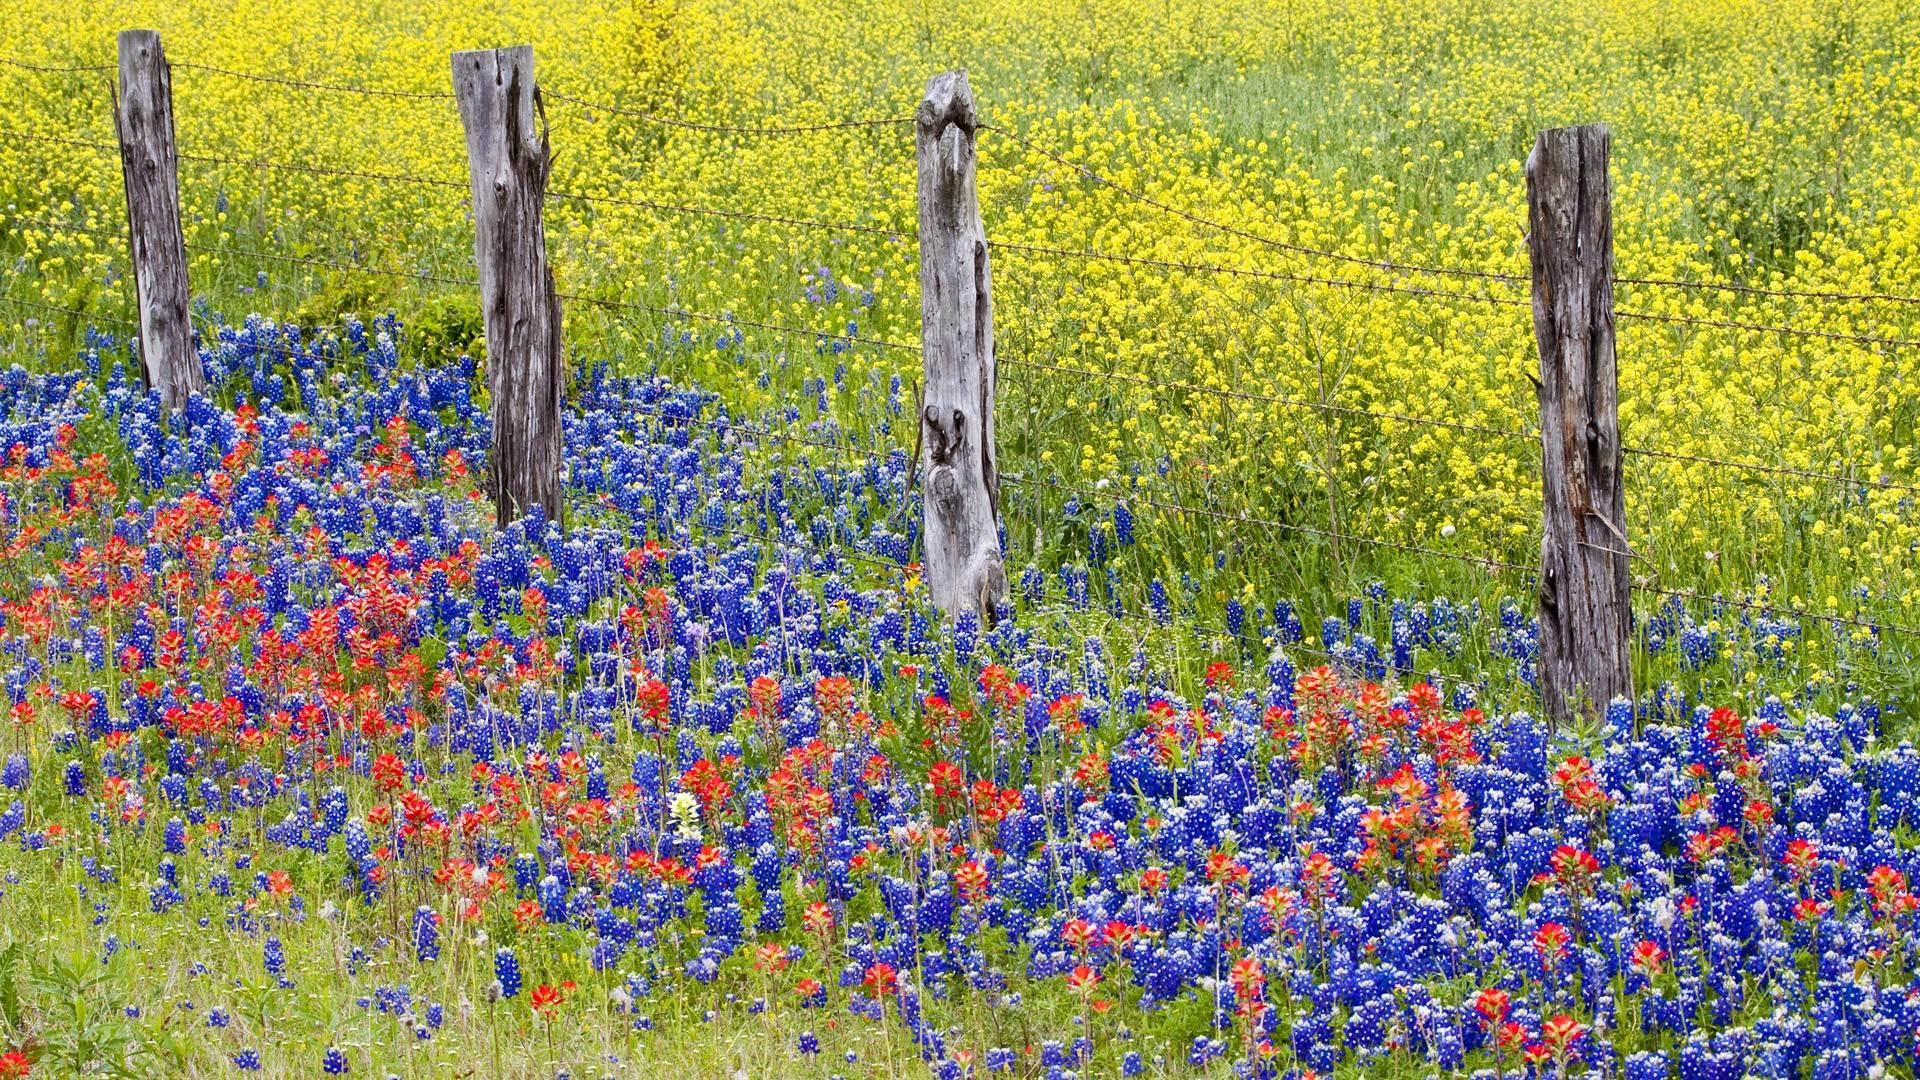 images for bluebonnets wallpaper